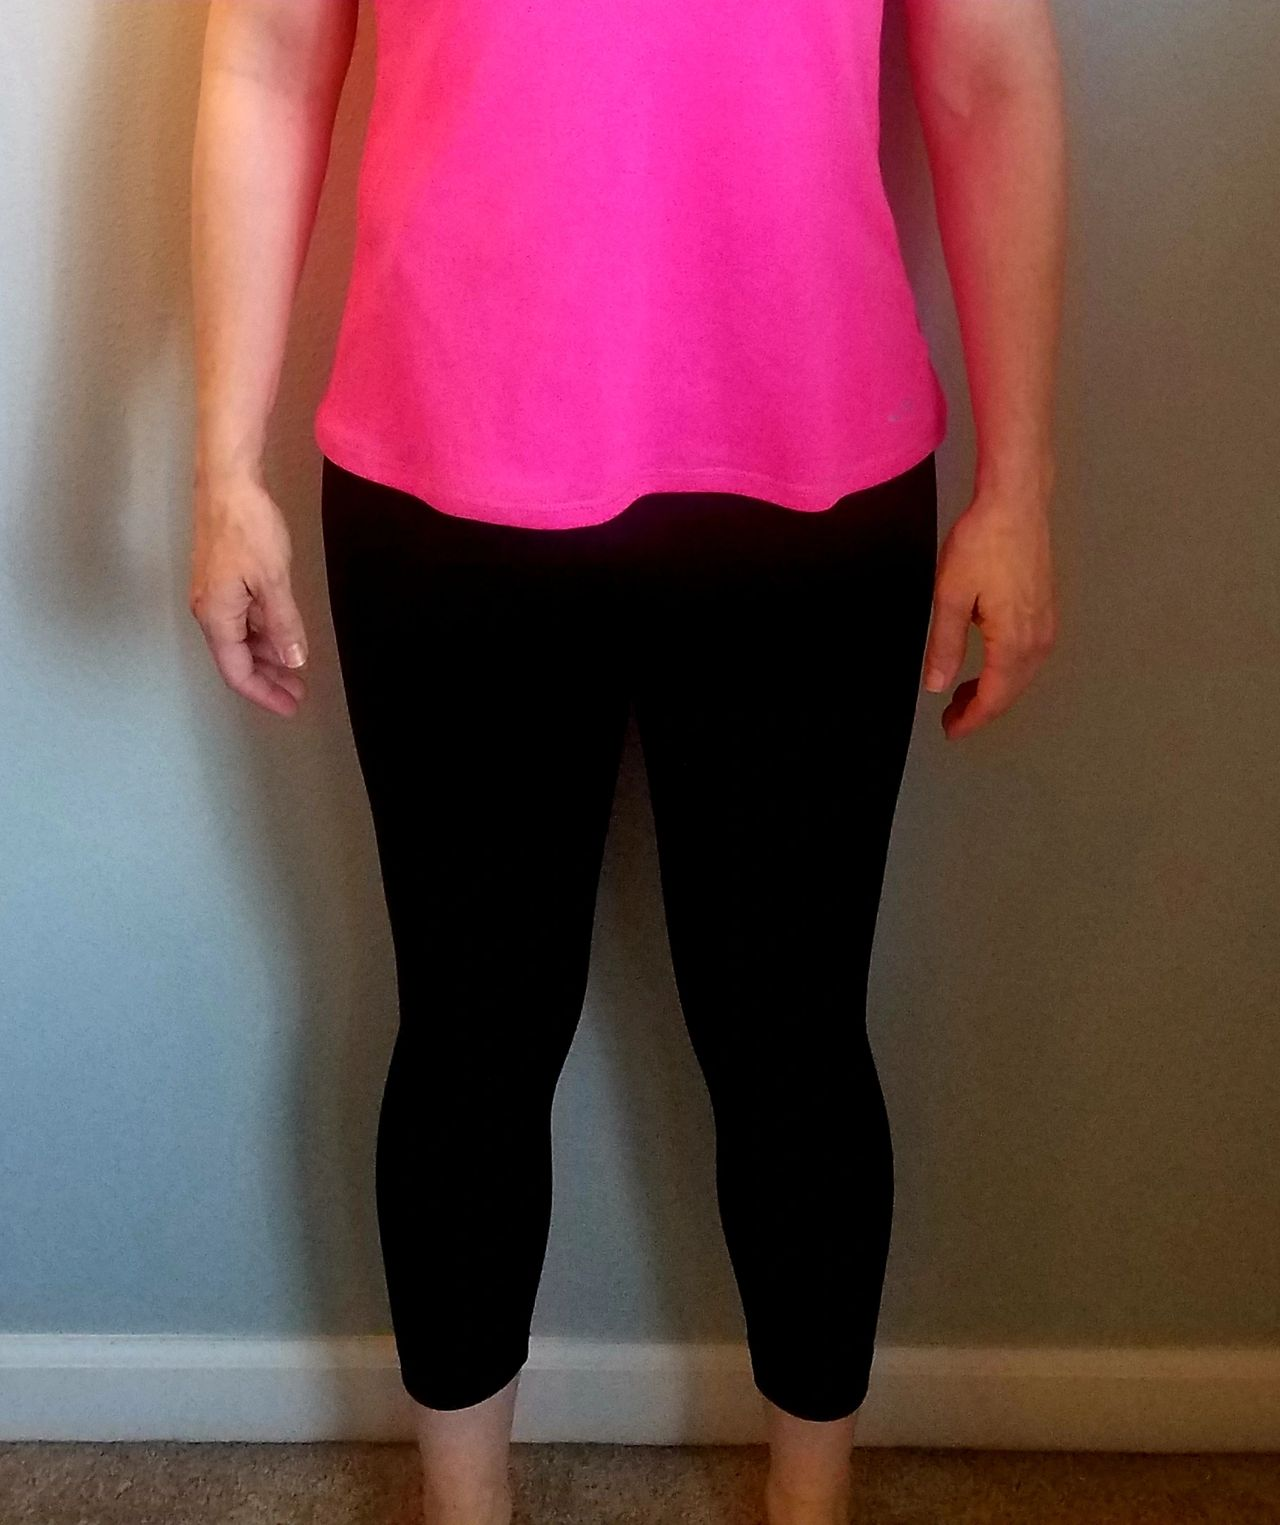 dde13c6045322 Review: UnderTech Undercover Concealed Carry Leggings (For Women)